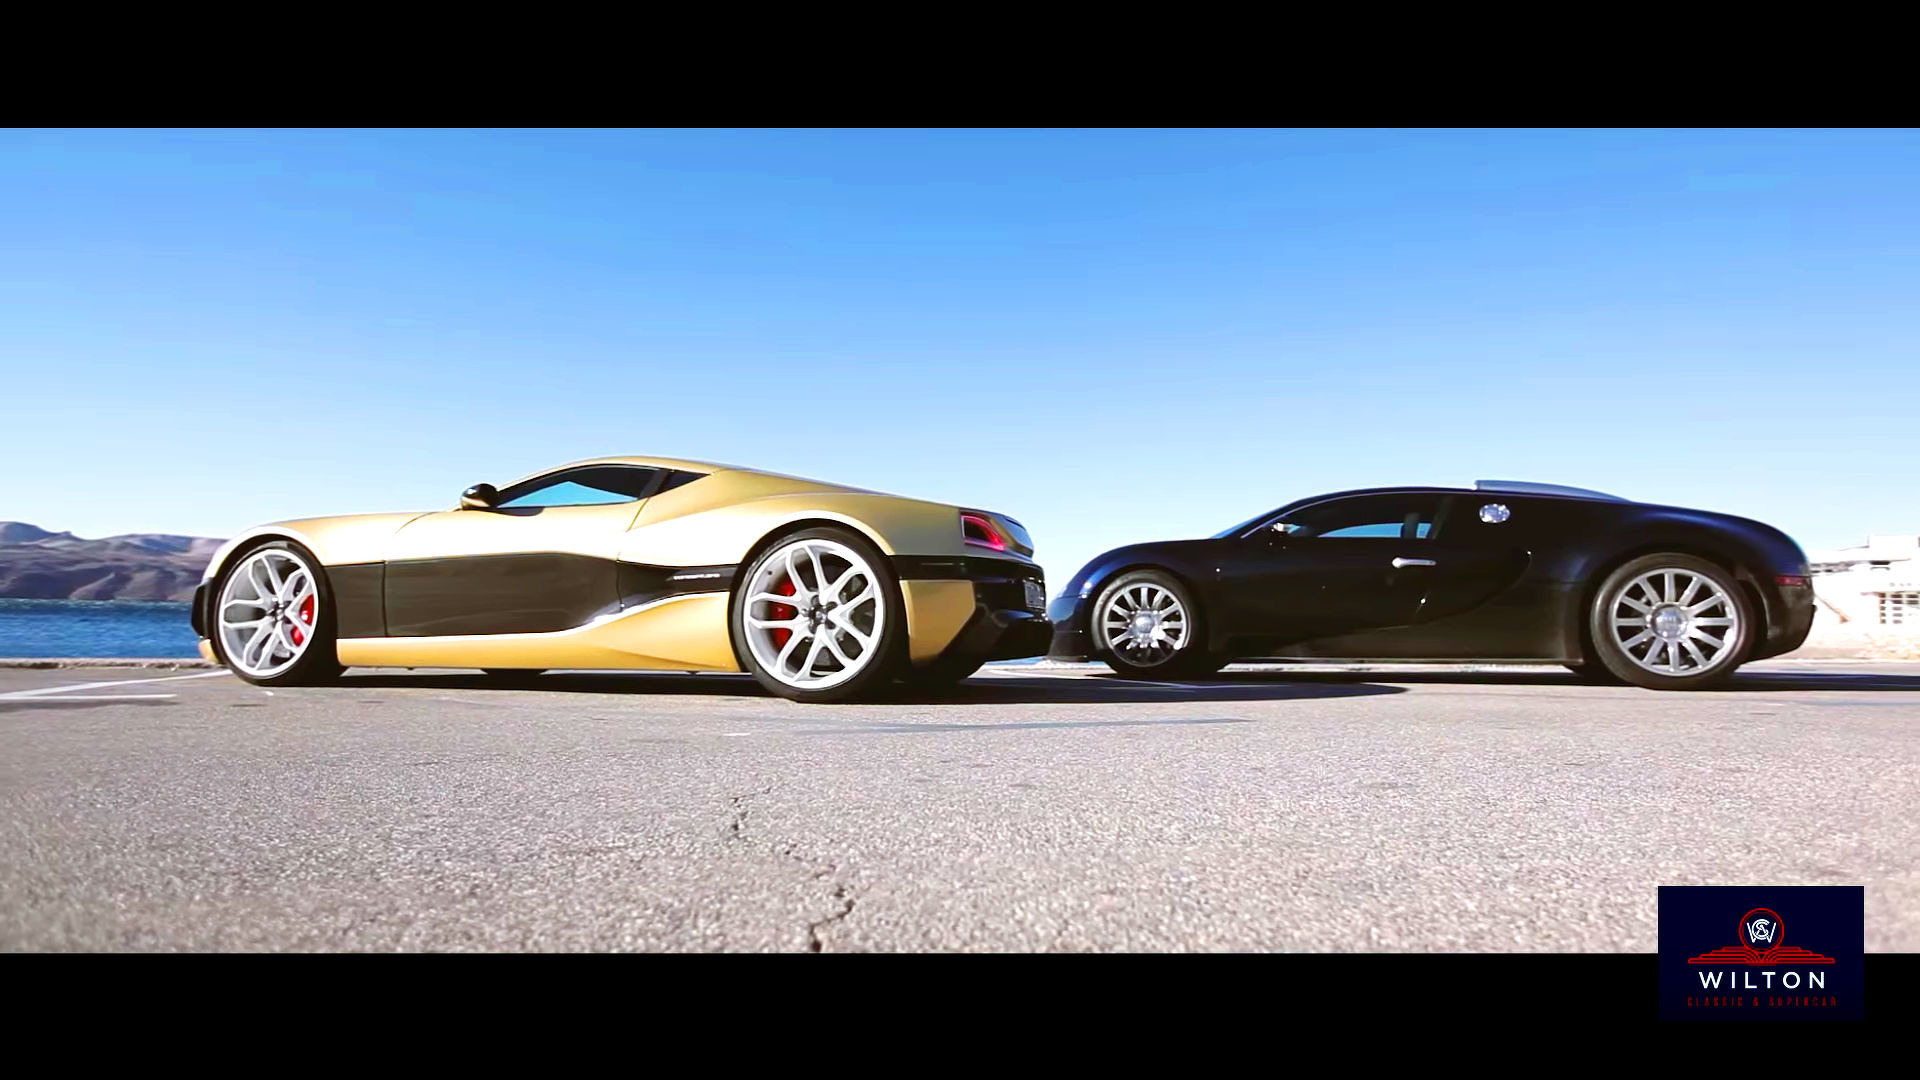 Rimac vs veyron electric vs combustion hypercars compared